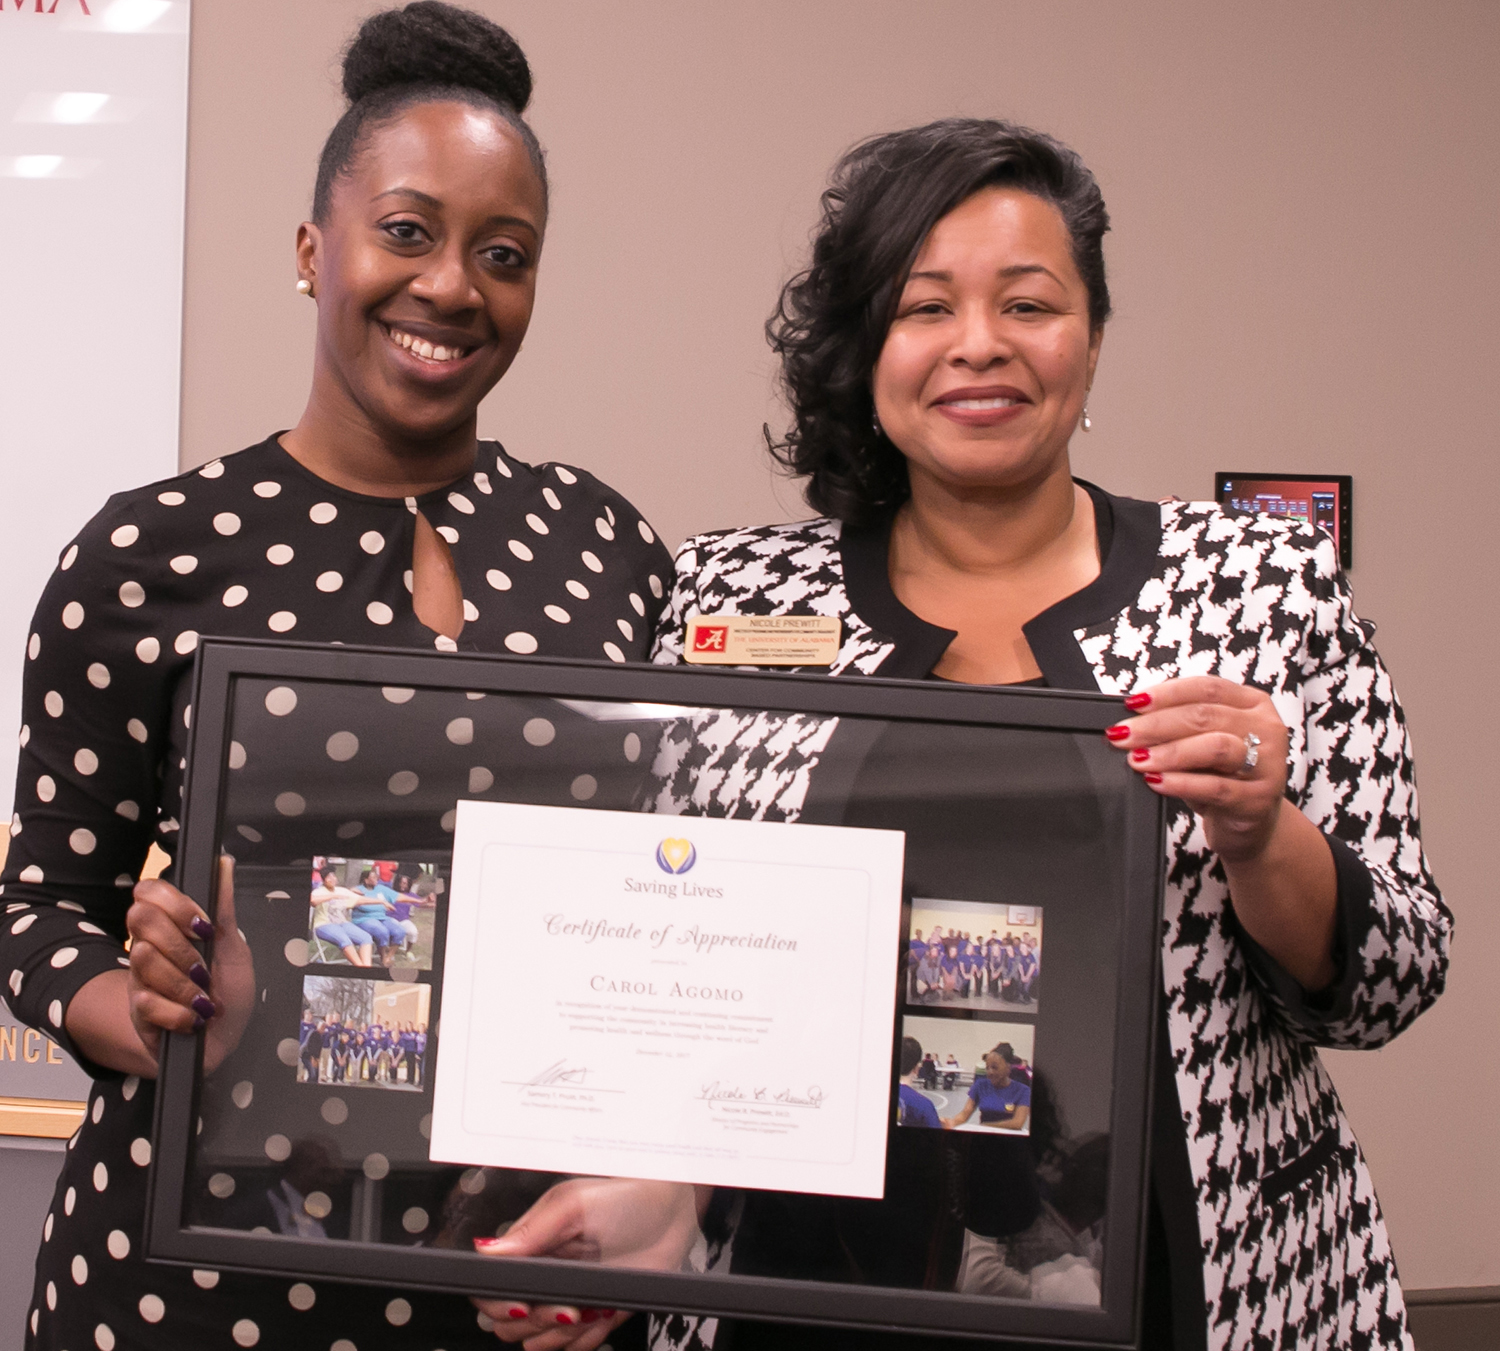 Carol Agomo receives a certificate of appreciation for her work with Saving Lives. With her is Dr. Nicole Prewitt, CCBP director of programs and partnerships for community engagement and director of the new Saving Lives Academy.